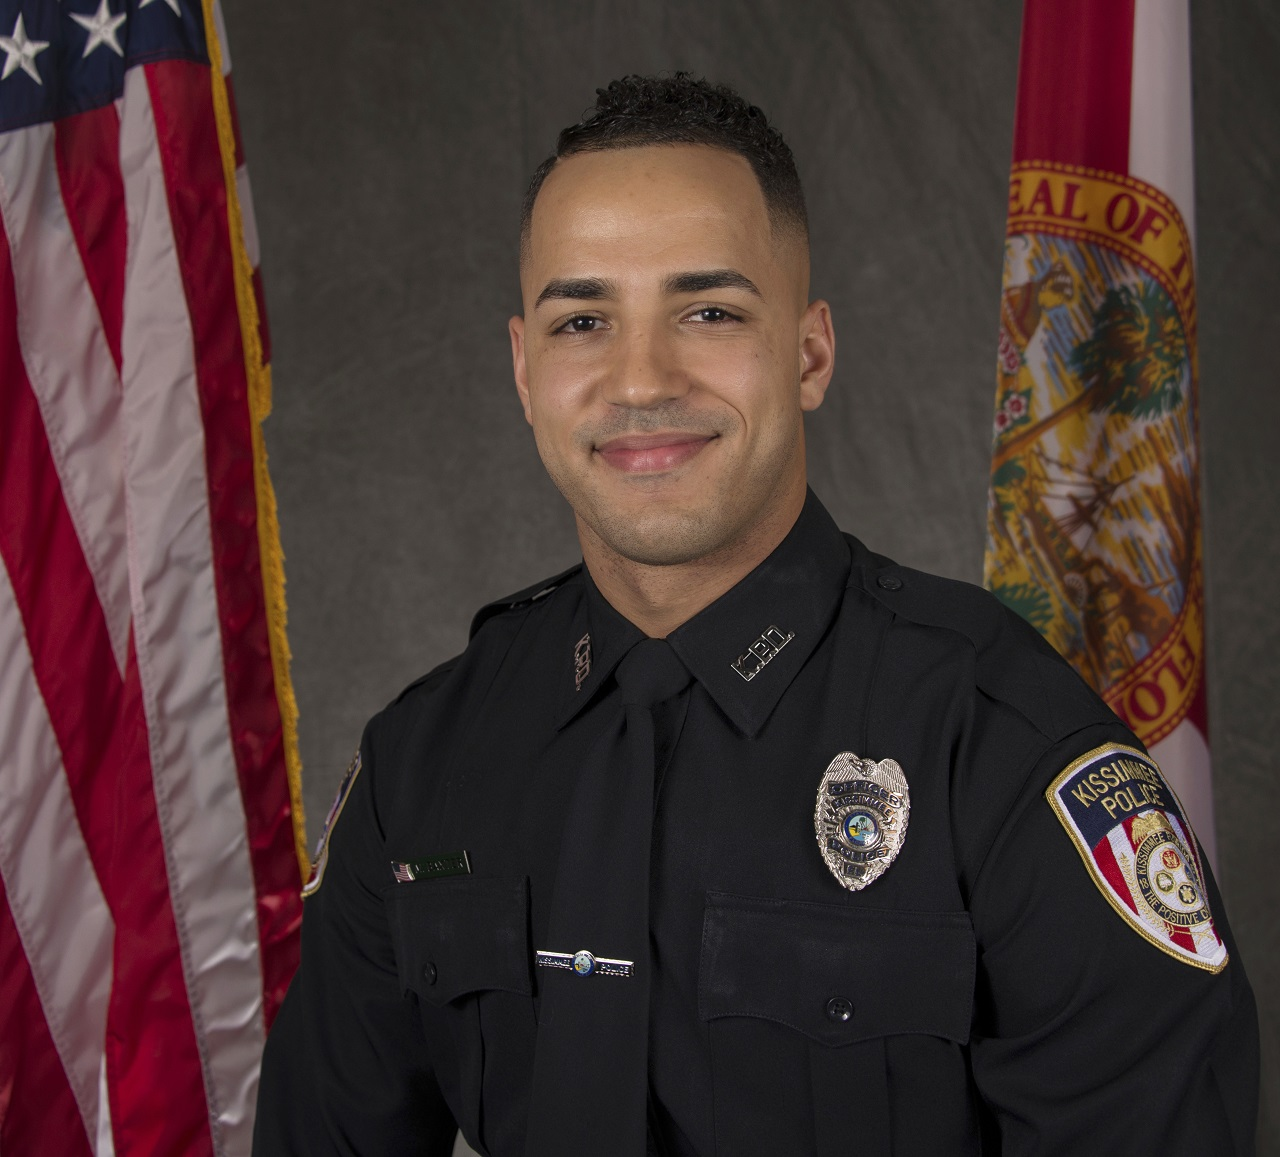 This undated photo from the Kissimmee Police Department shows Officer Matthew Baxter.